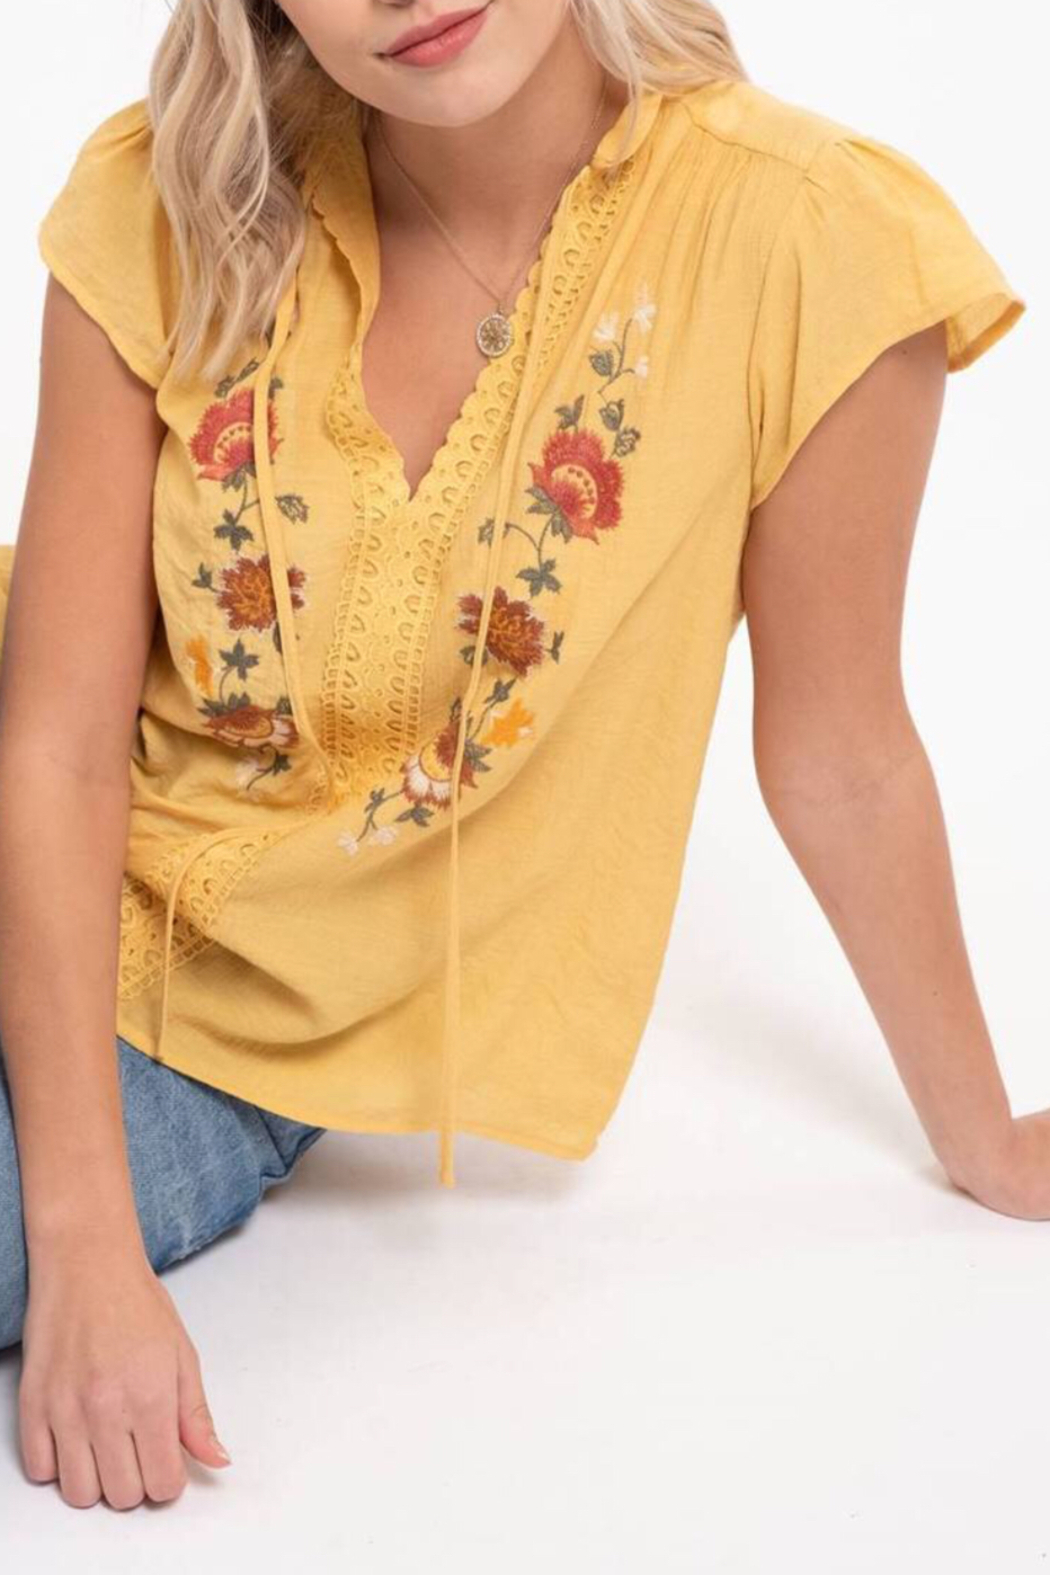 blu Pepper  Embroidered Floral Top - Front Full Image